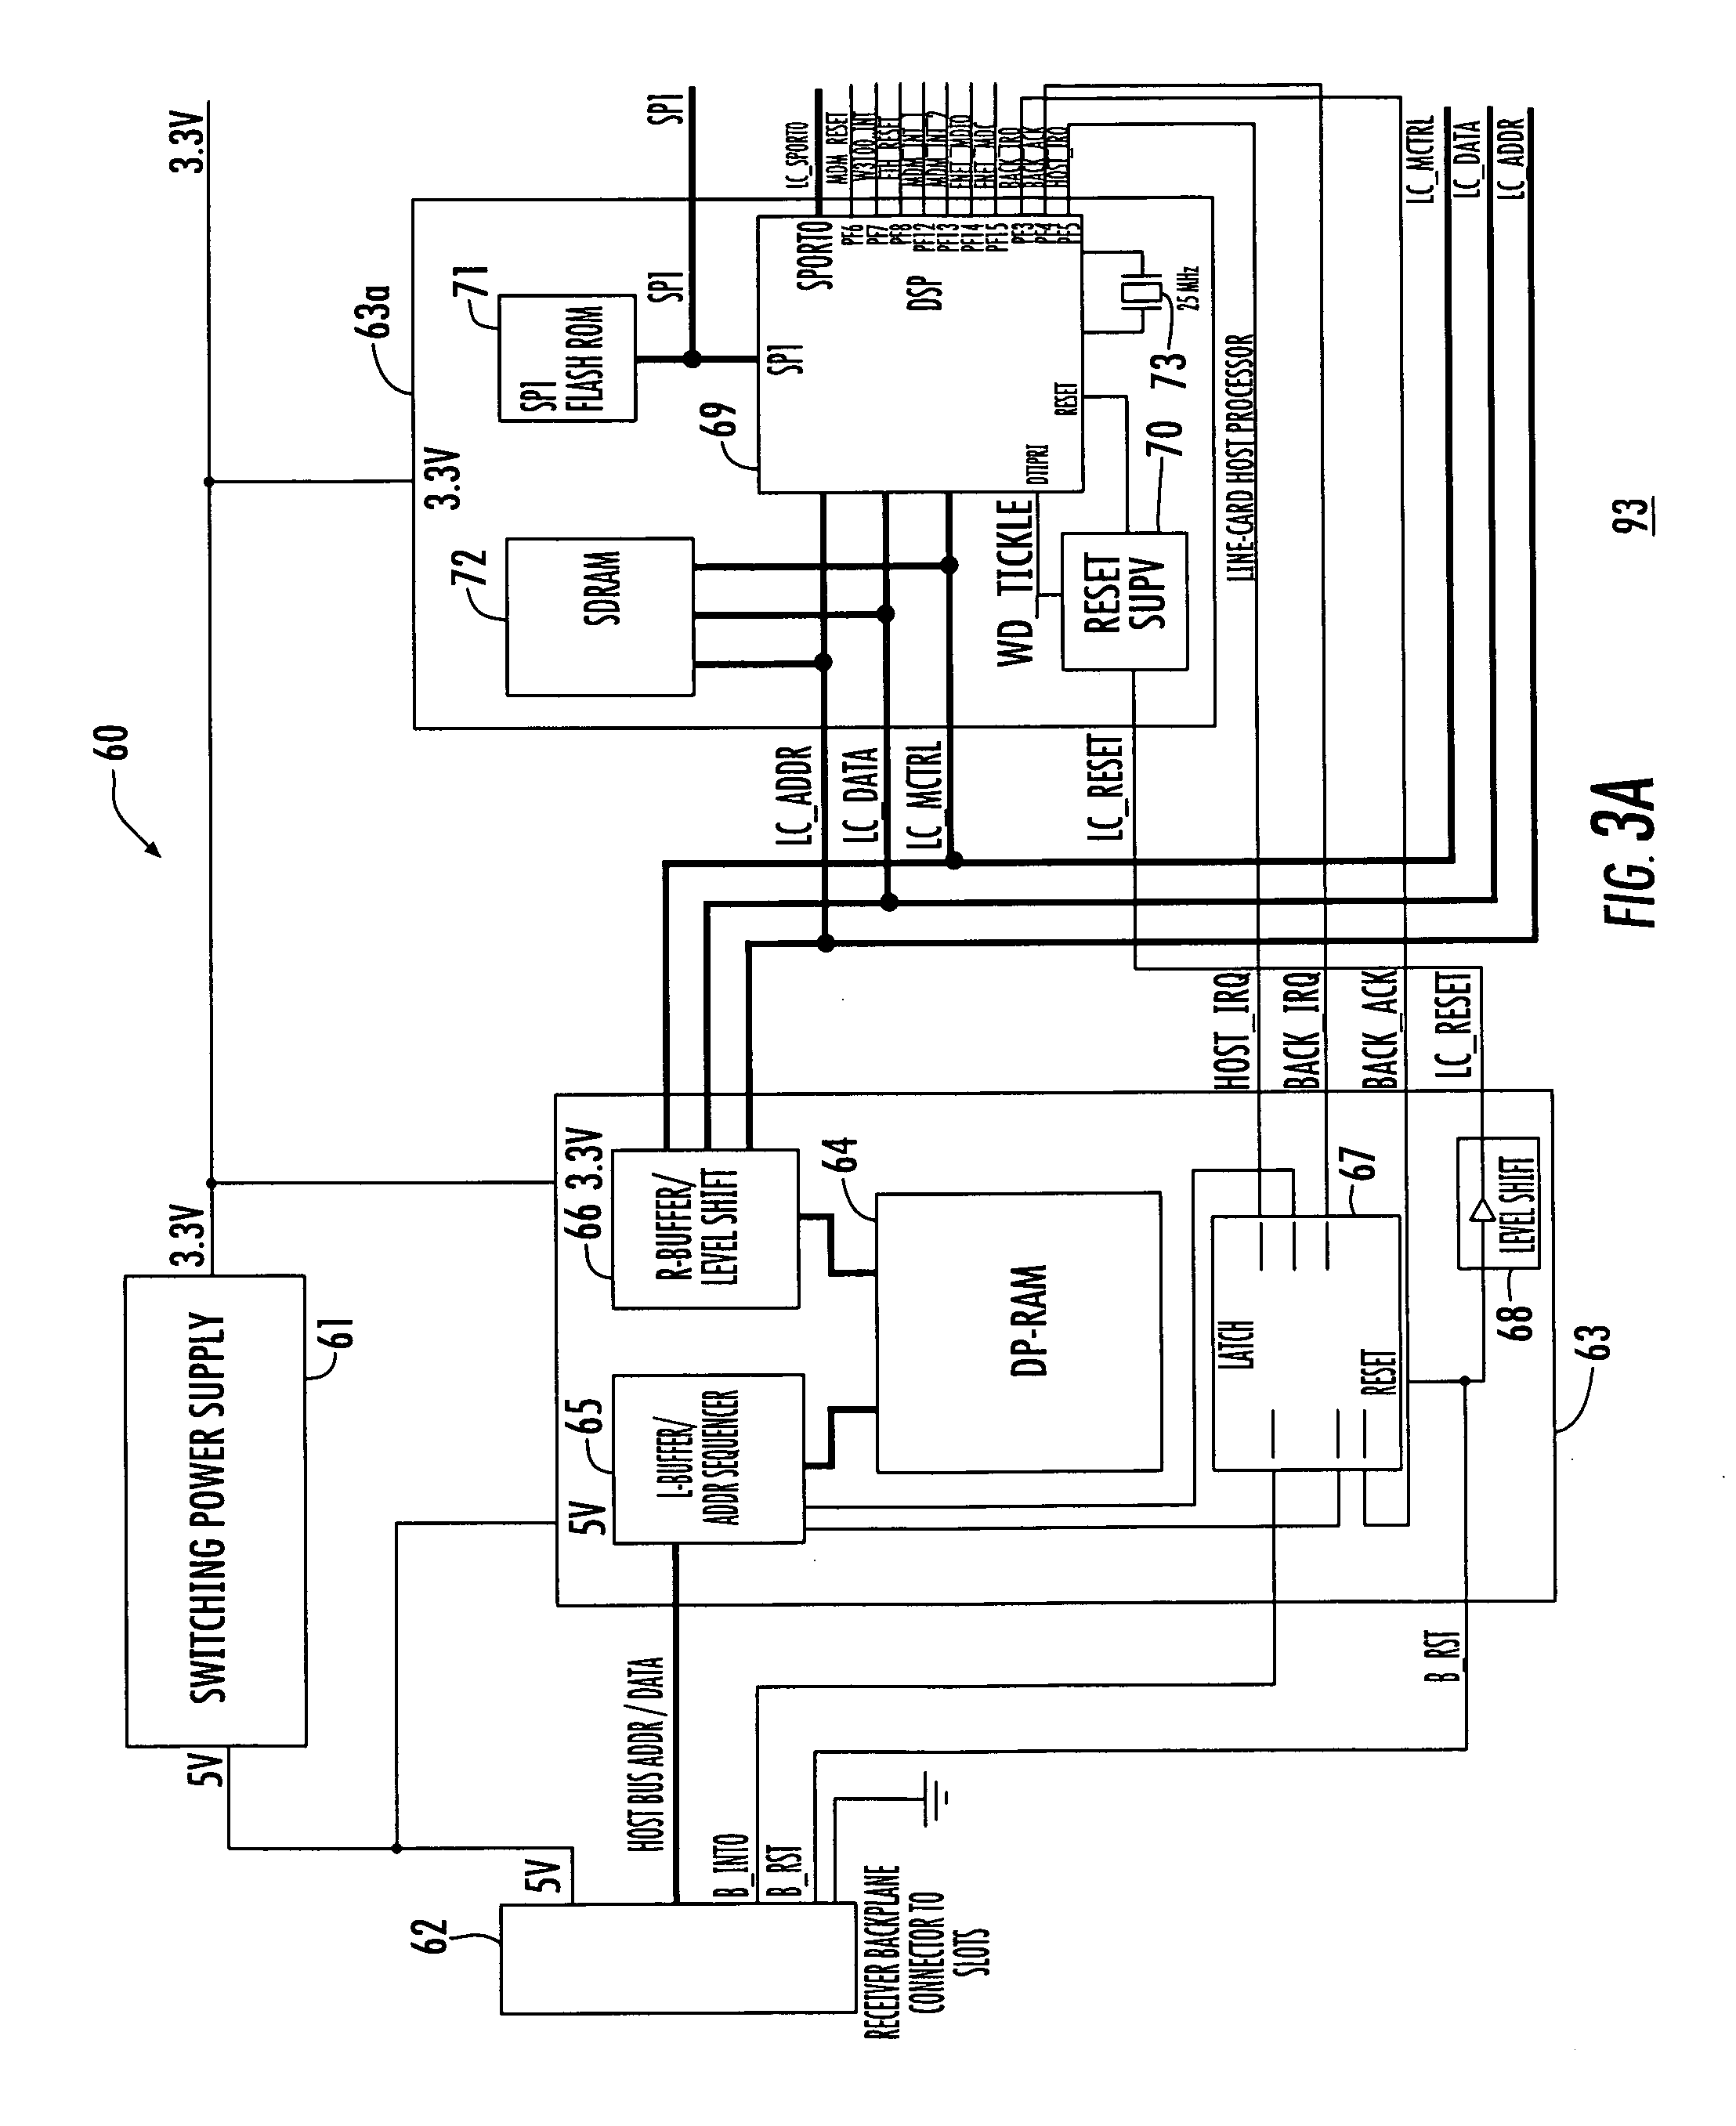 US20090058630A1 20090305 D00004?resize=665%2C814 simplex fire alarm wiring diagrams motor control ladder diagrams fire alarm smoke detector wiring diagram at aneh.co